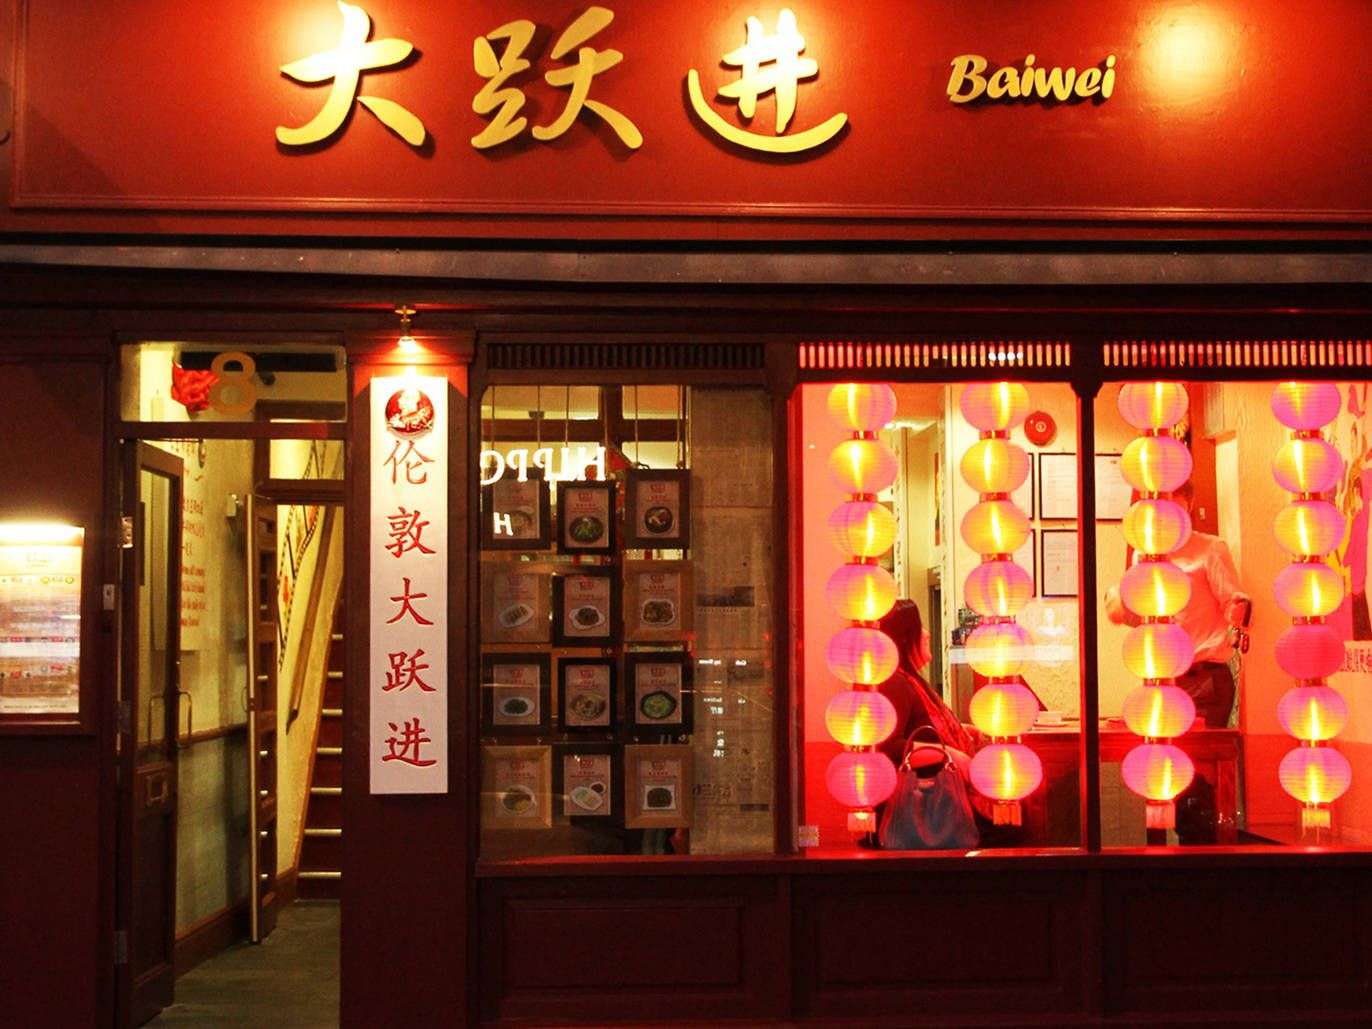 Restaurant roundup amarillo 2017 - The Restaurants Of London S Chinatown Can Seem Daunting To The Uninitiated Spoilt For Choice